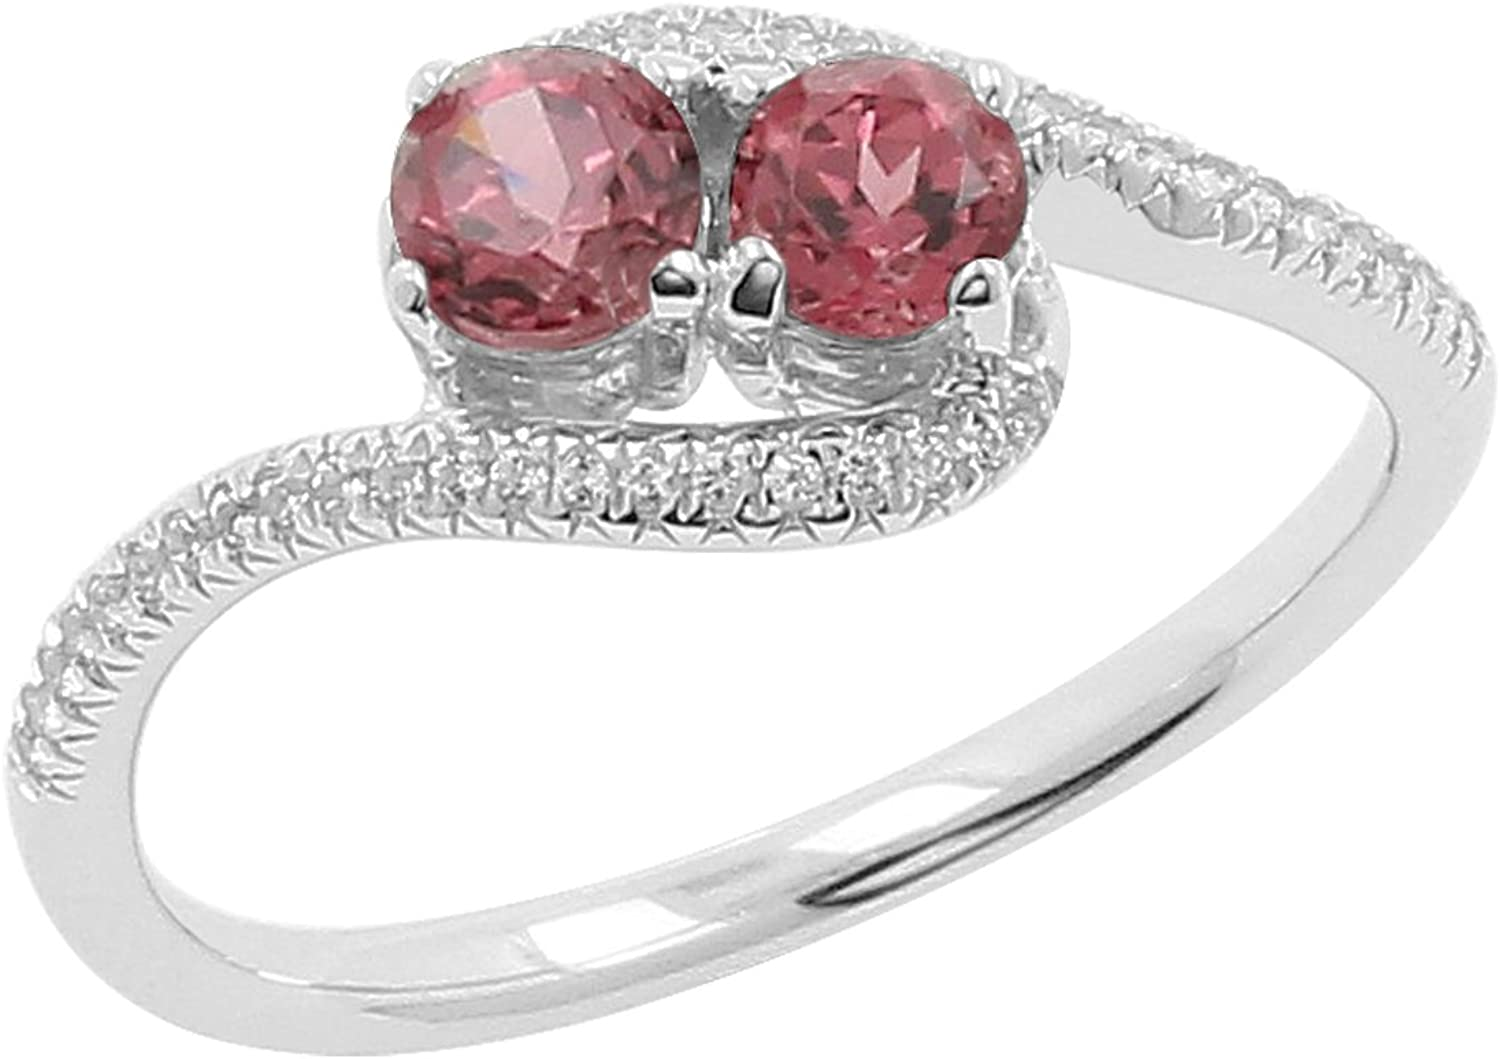 Isha Luxe-Gemstone Collection Rhodolite and White Topaz 2-Stone Curved Bypass Ring in 925 Silver Size-7